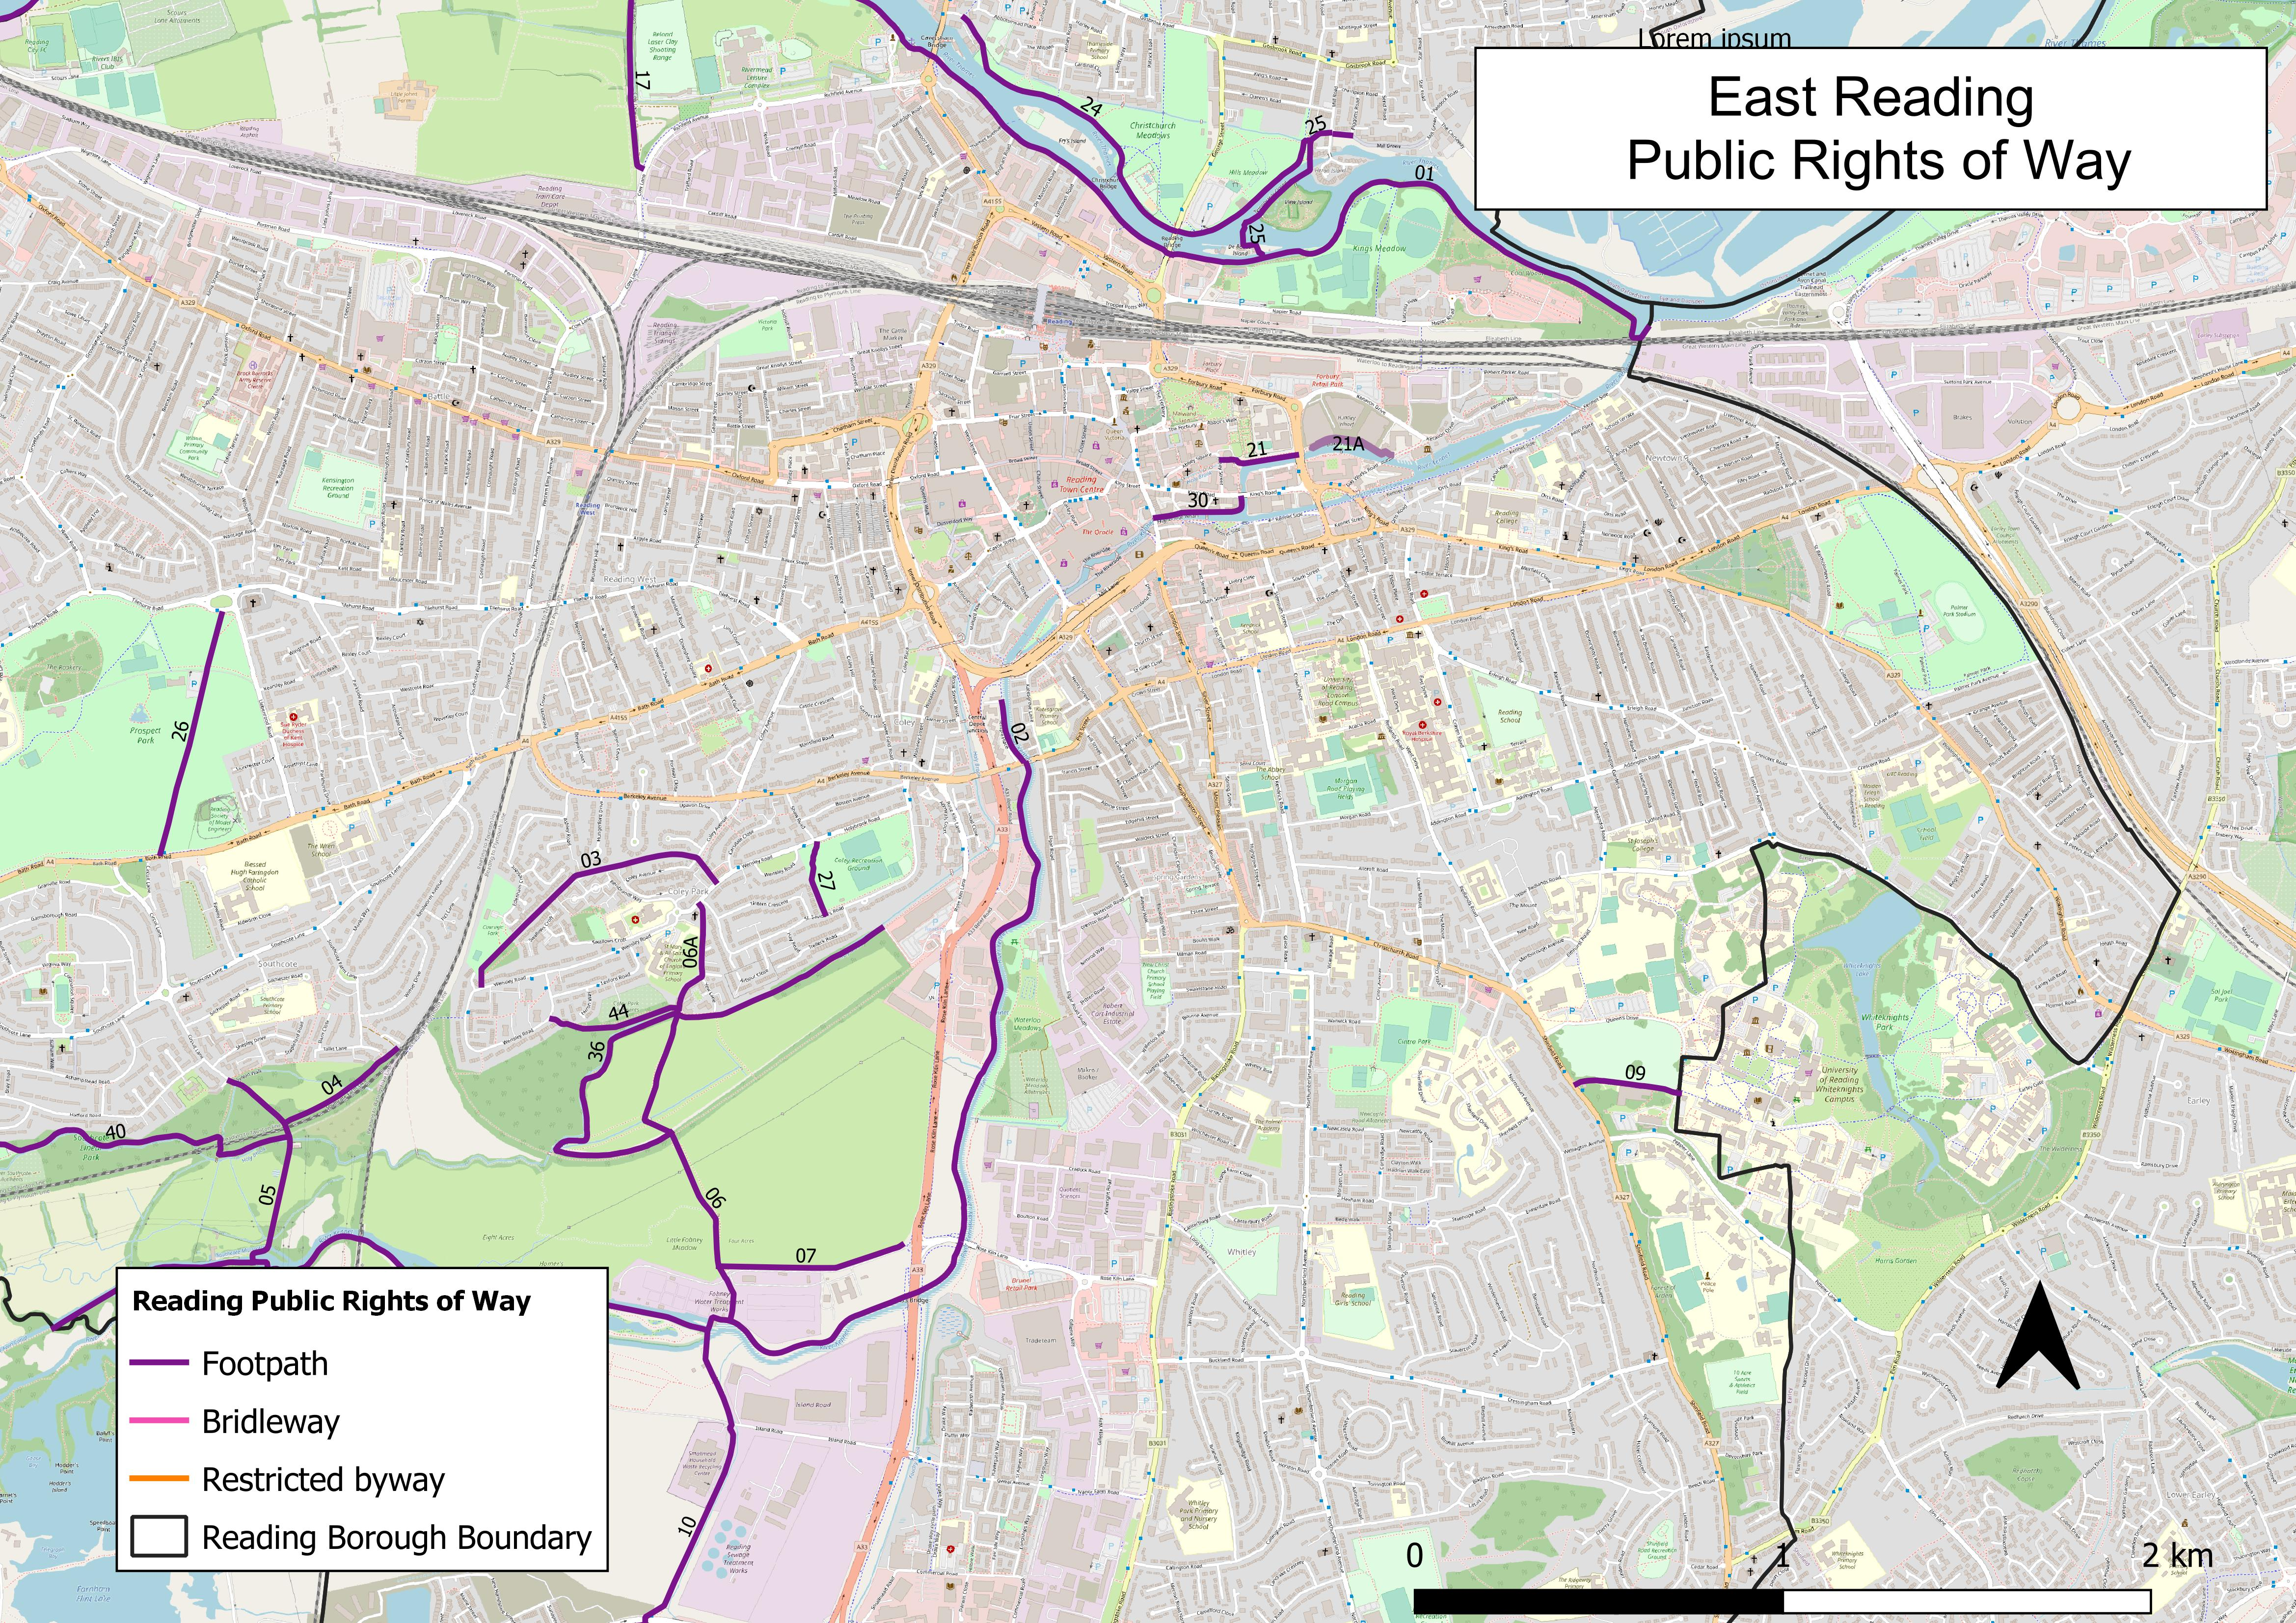 Map of public rights of way in East Reading